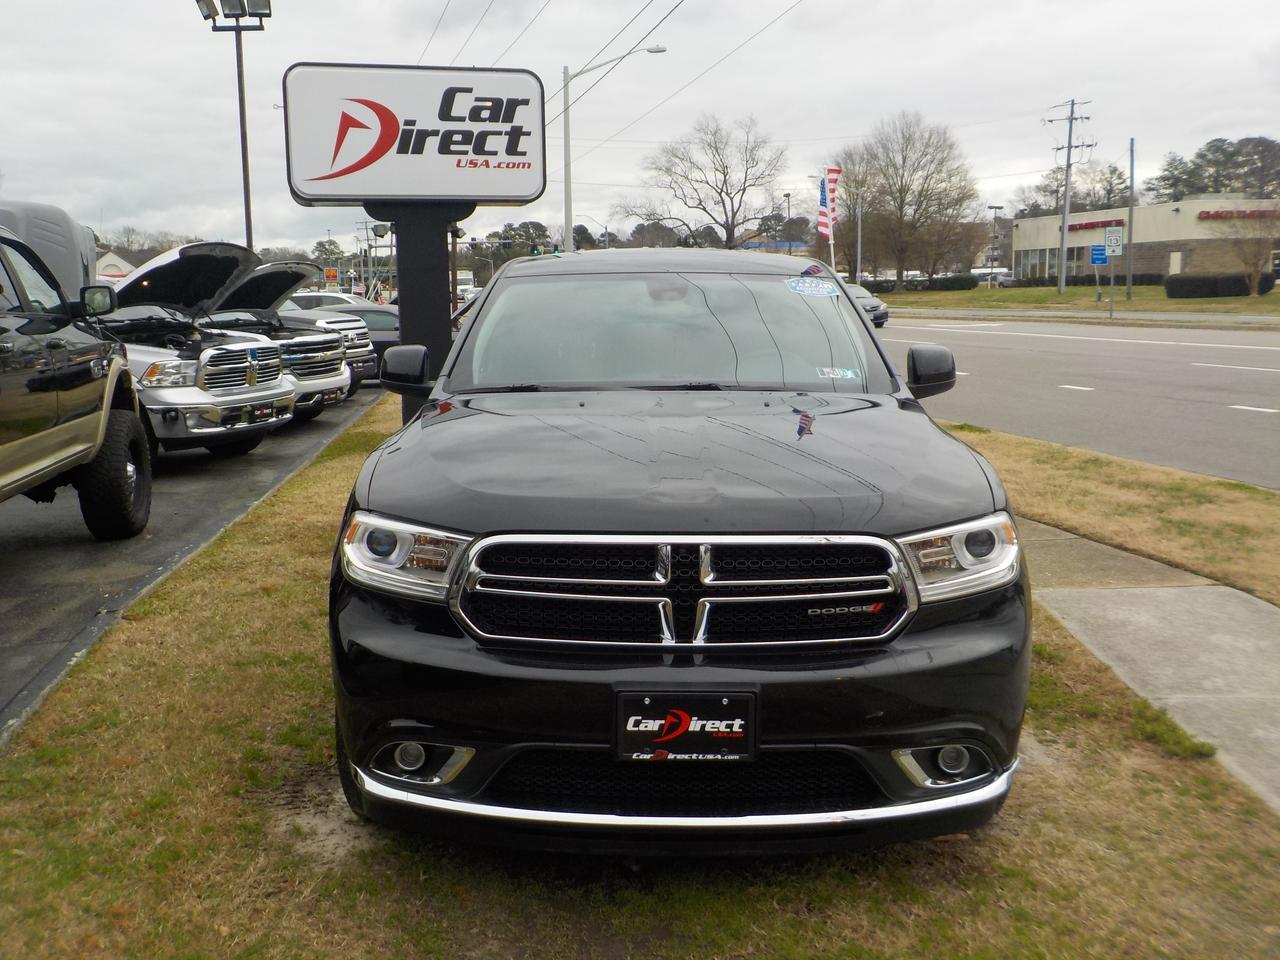 2014 DODGE DURANGO SXT AWD, 3RD ROW, BLUETOOTH WIRELESS, WELL MAINTAINED, ONLY 24K MILES! Virginia Beach VA